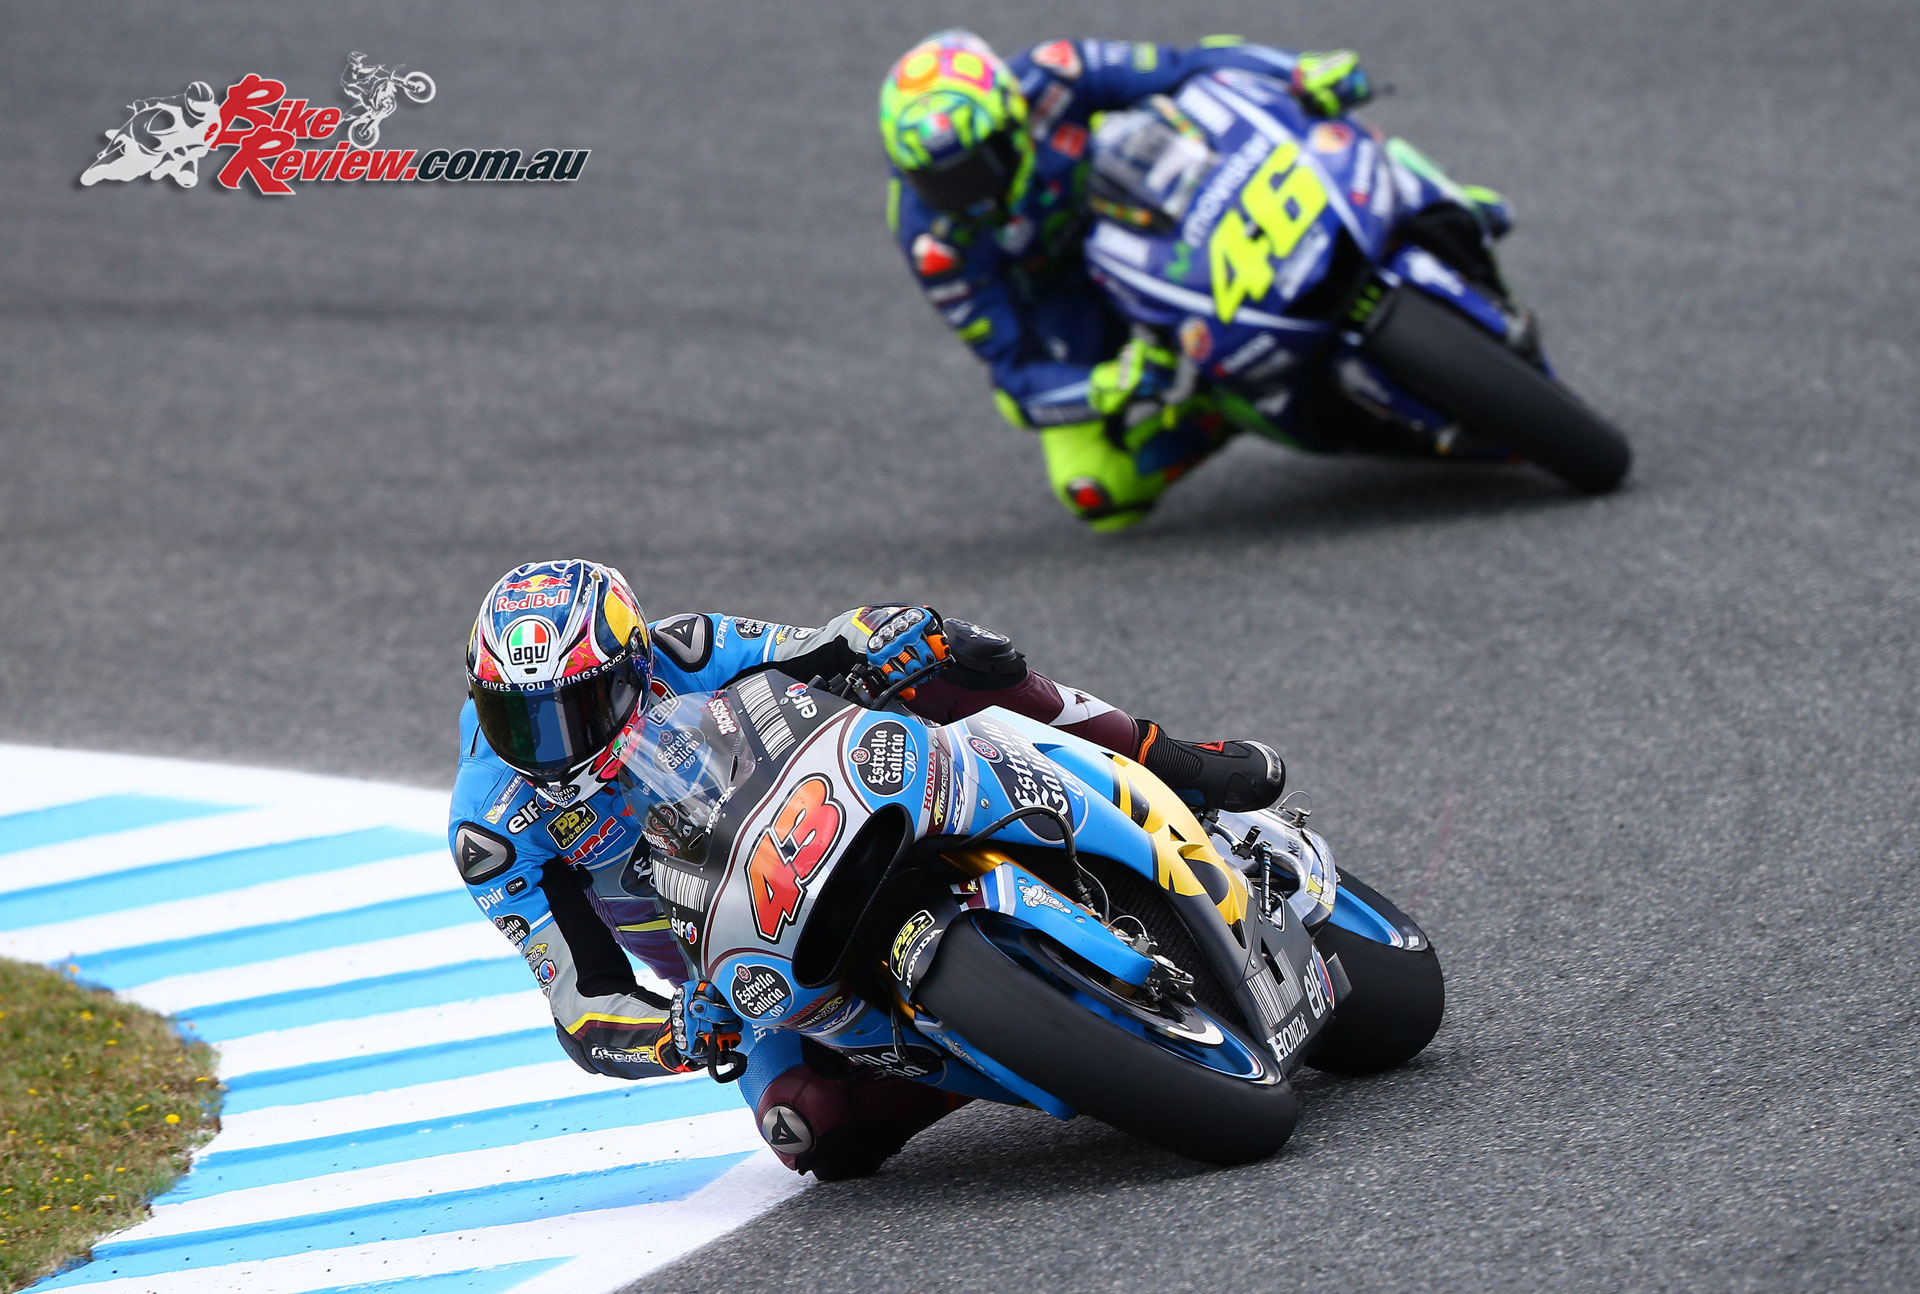 Jack Miller taken out by Bautista at Jerez - Bike Review